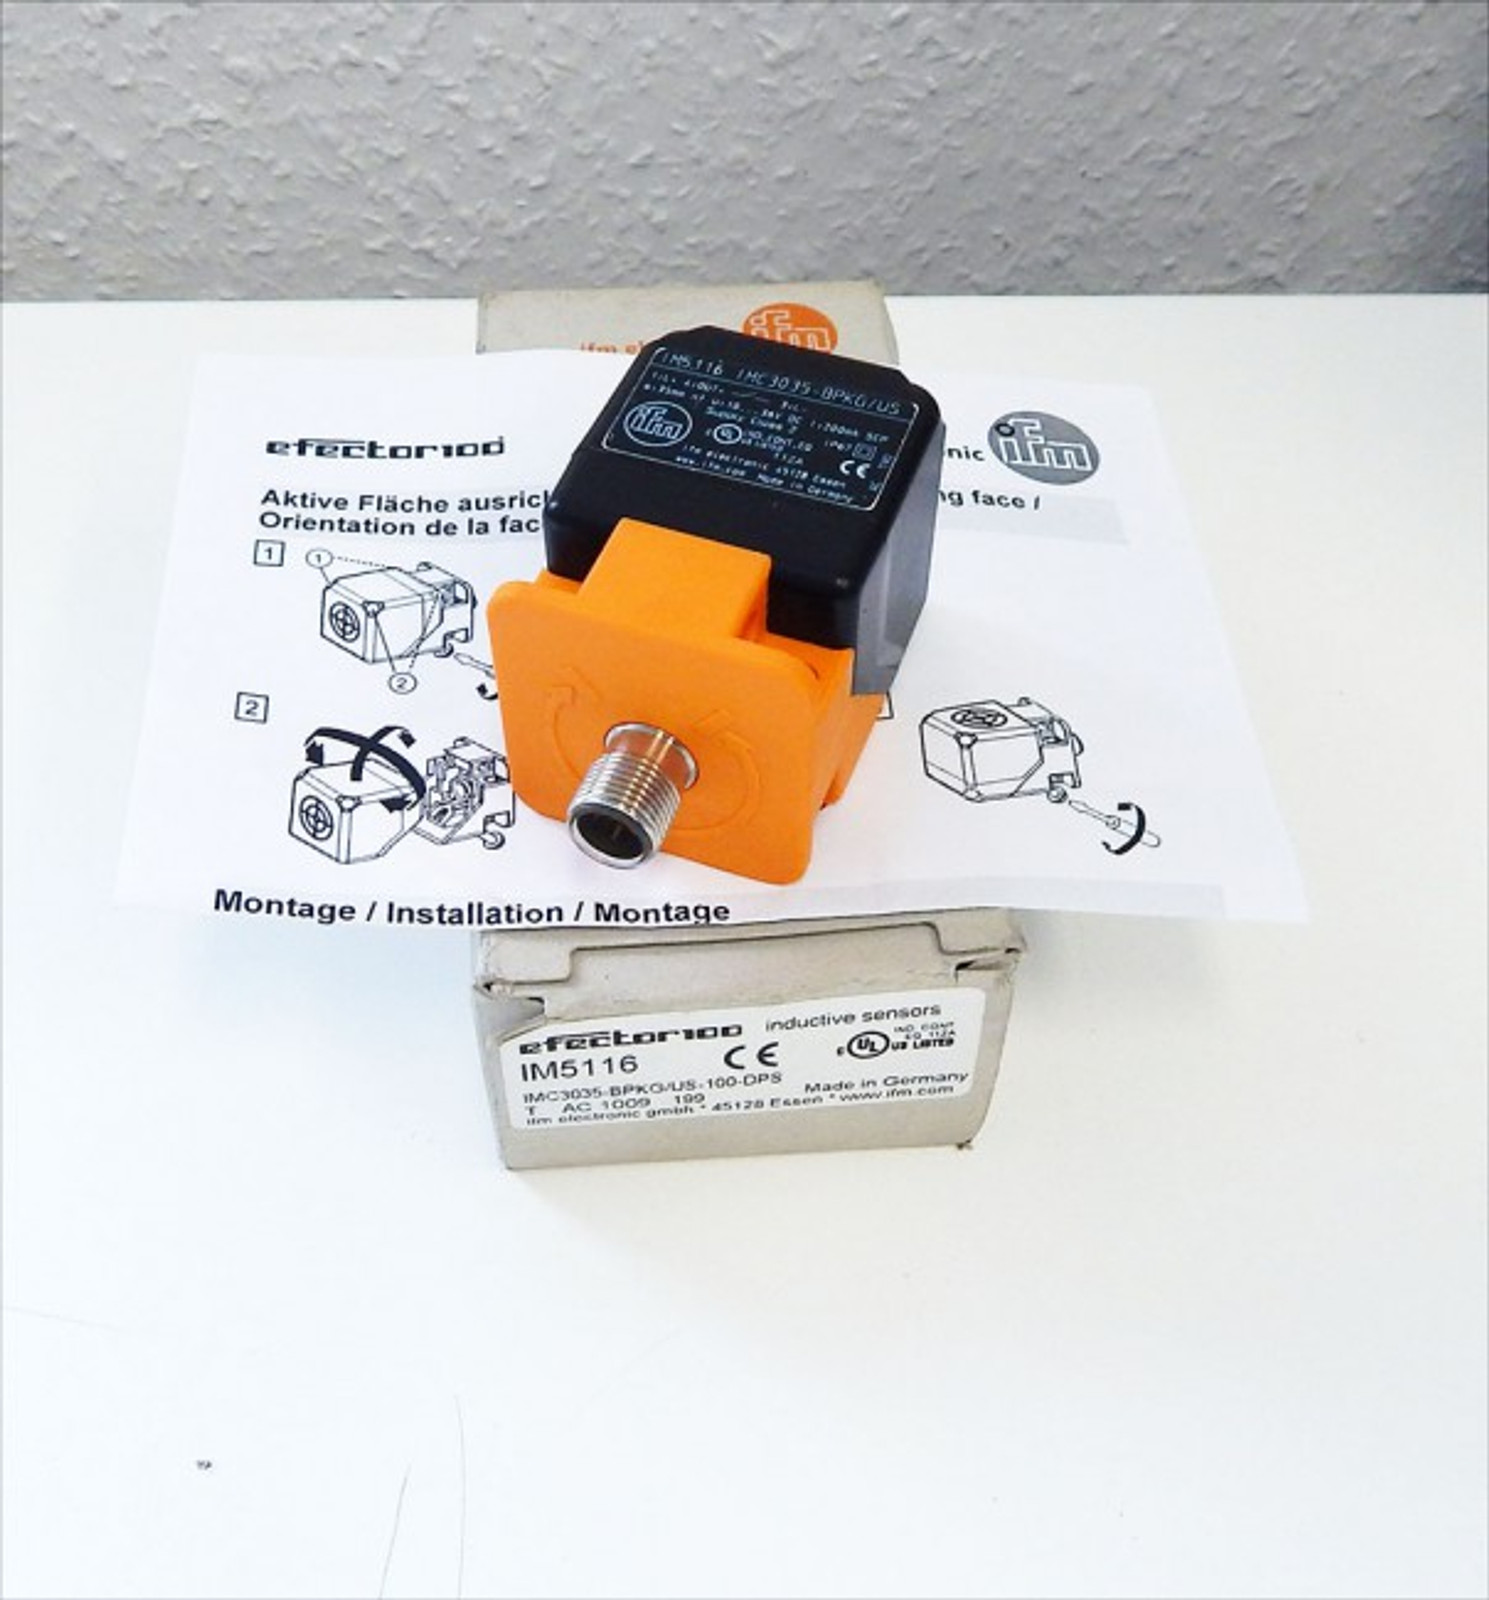 IFM efector 100 IM5116 indukt.Sensor IMC3035-BPKG/US-100-DPS - unused - in OVP